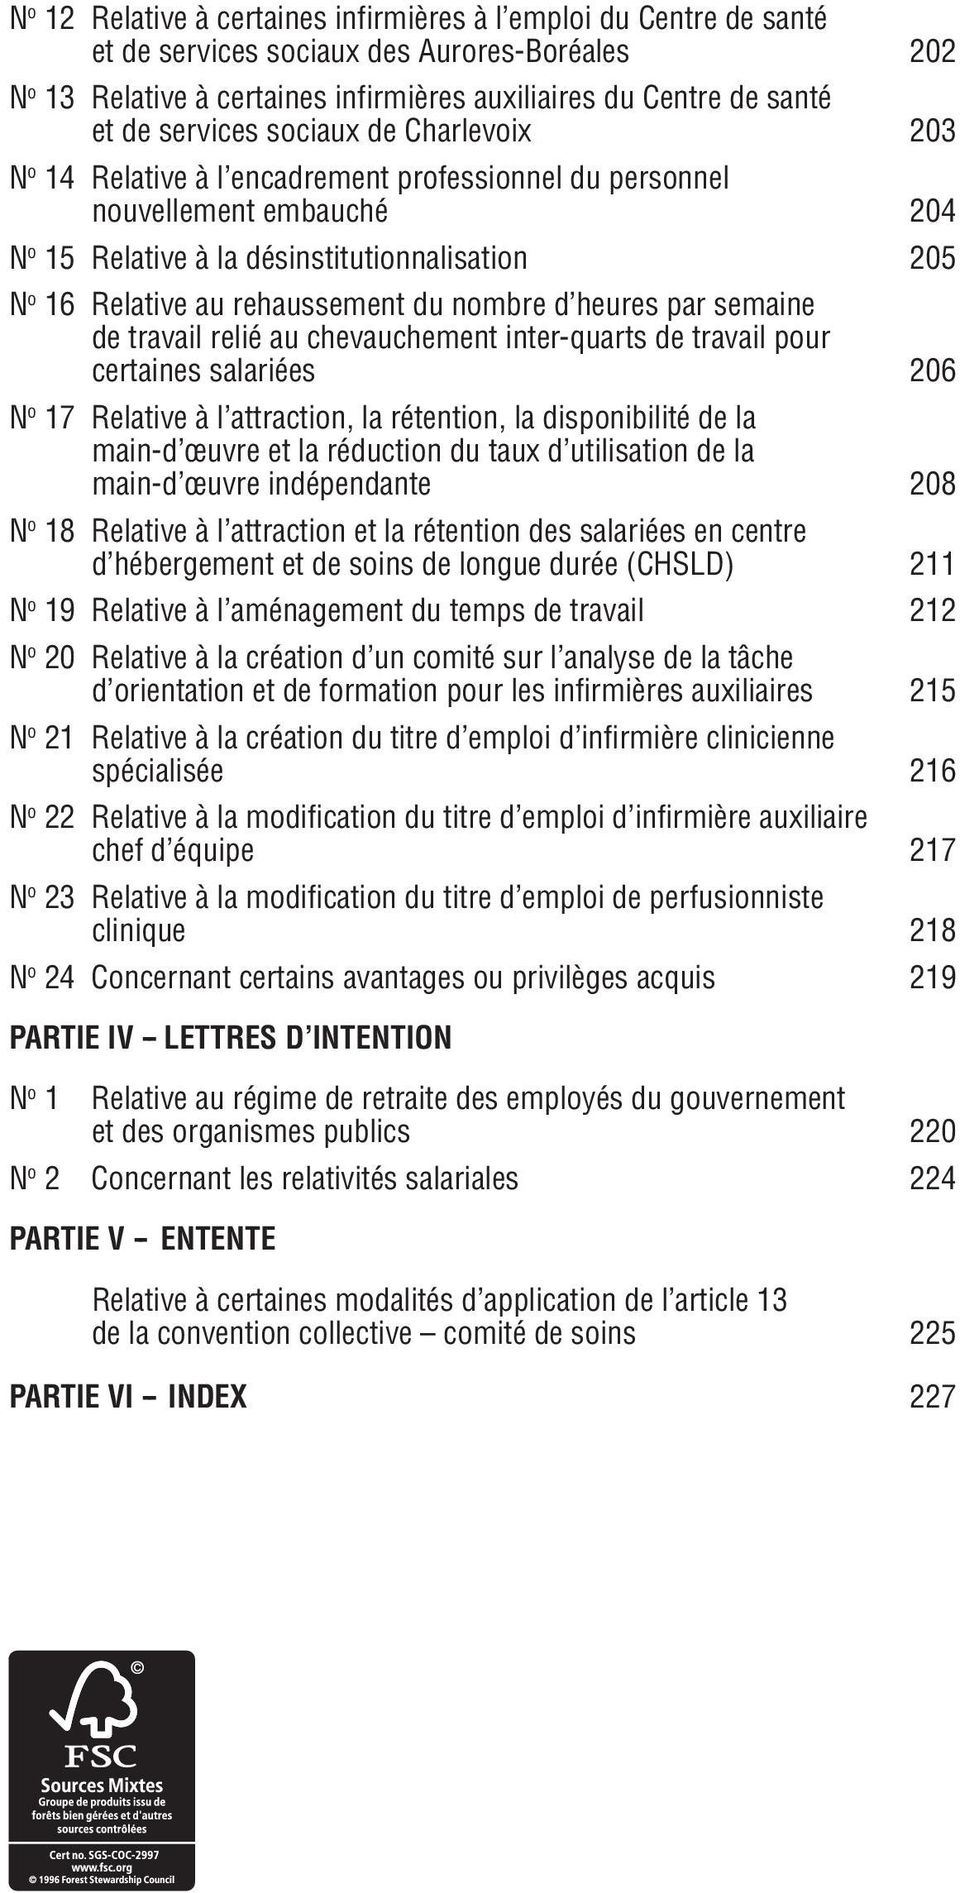 heures par semaine de travail relié chevchement inter-quarts de travail pour certaines salariées 206 N o 17 Relative à l attraction, la rétention, la disponibilité de la main-d œuvre et la réduction